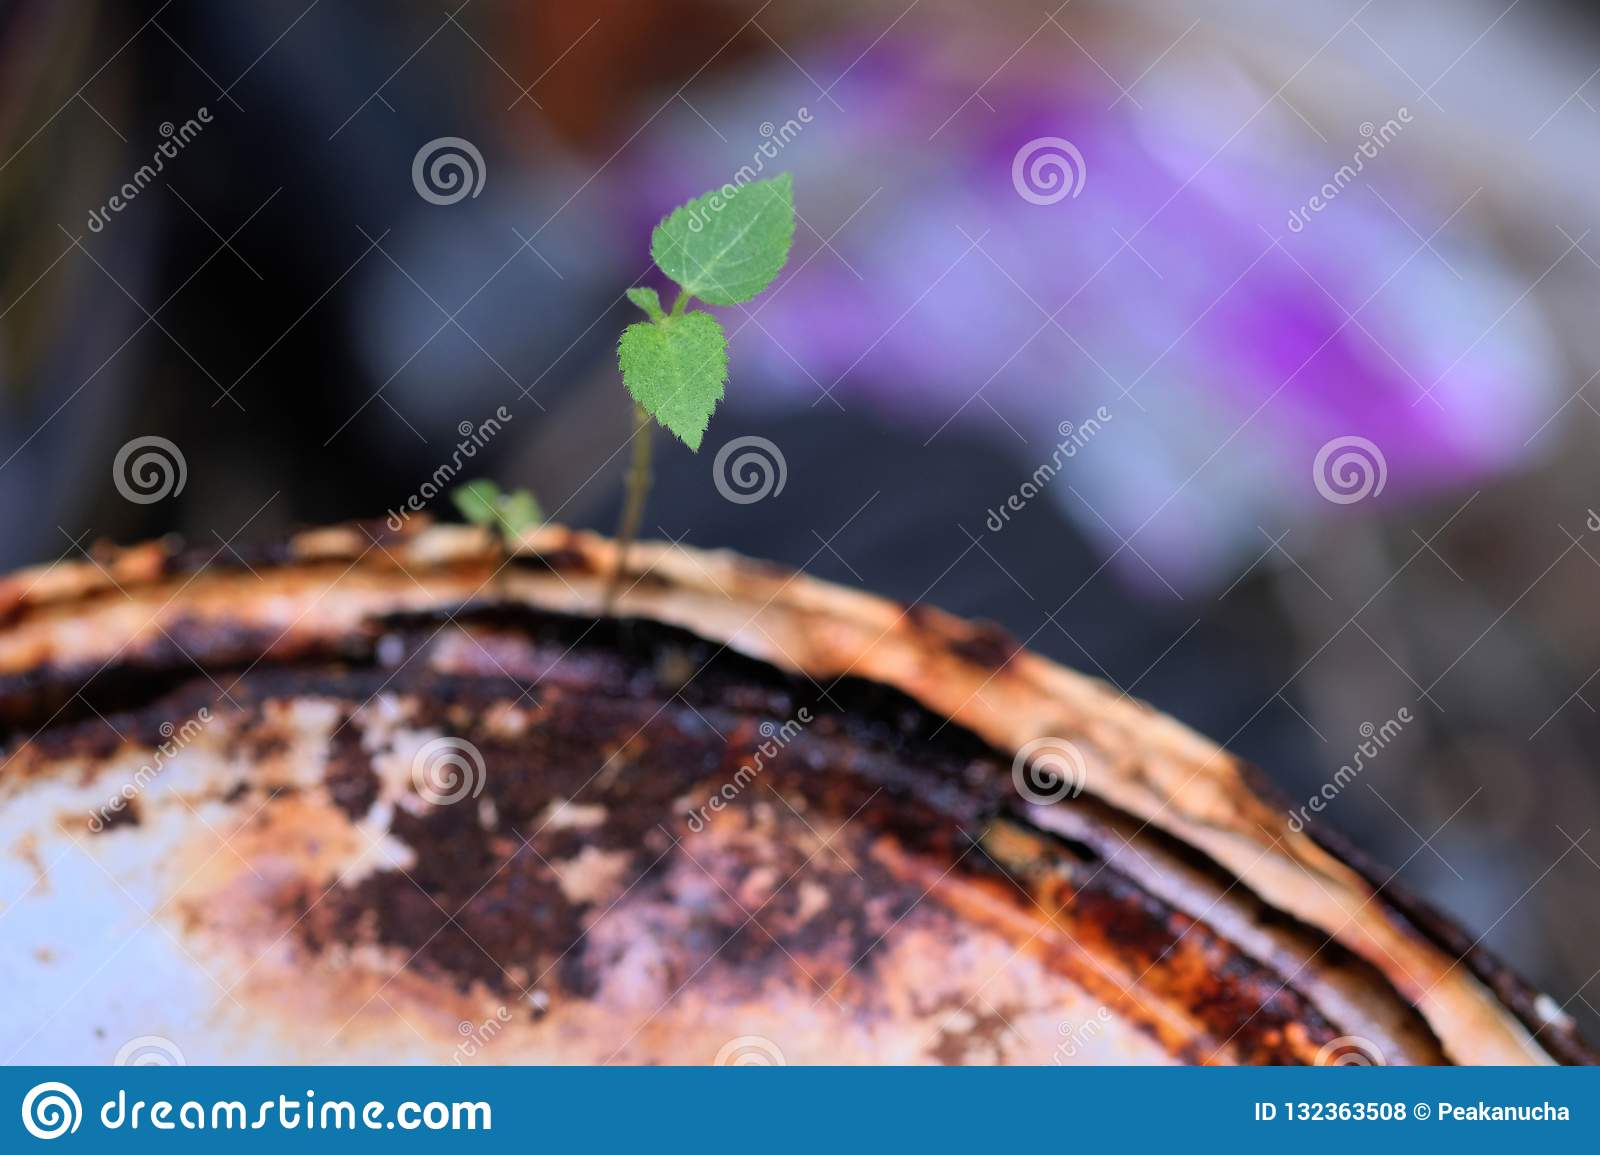 Survival of young plants to grow